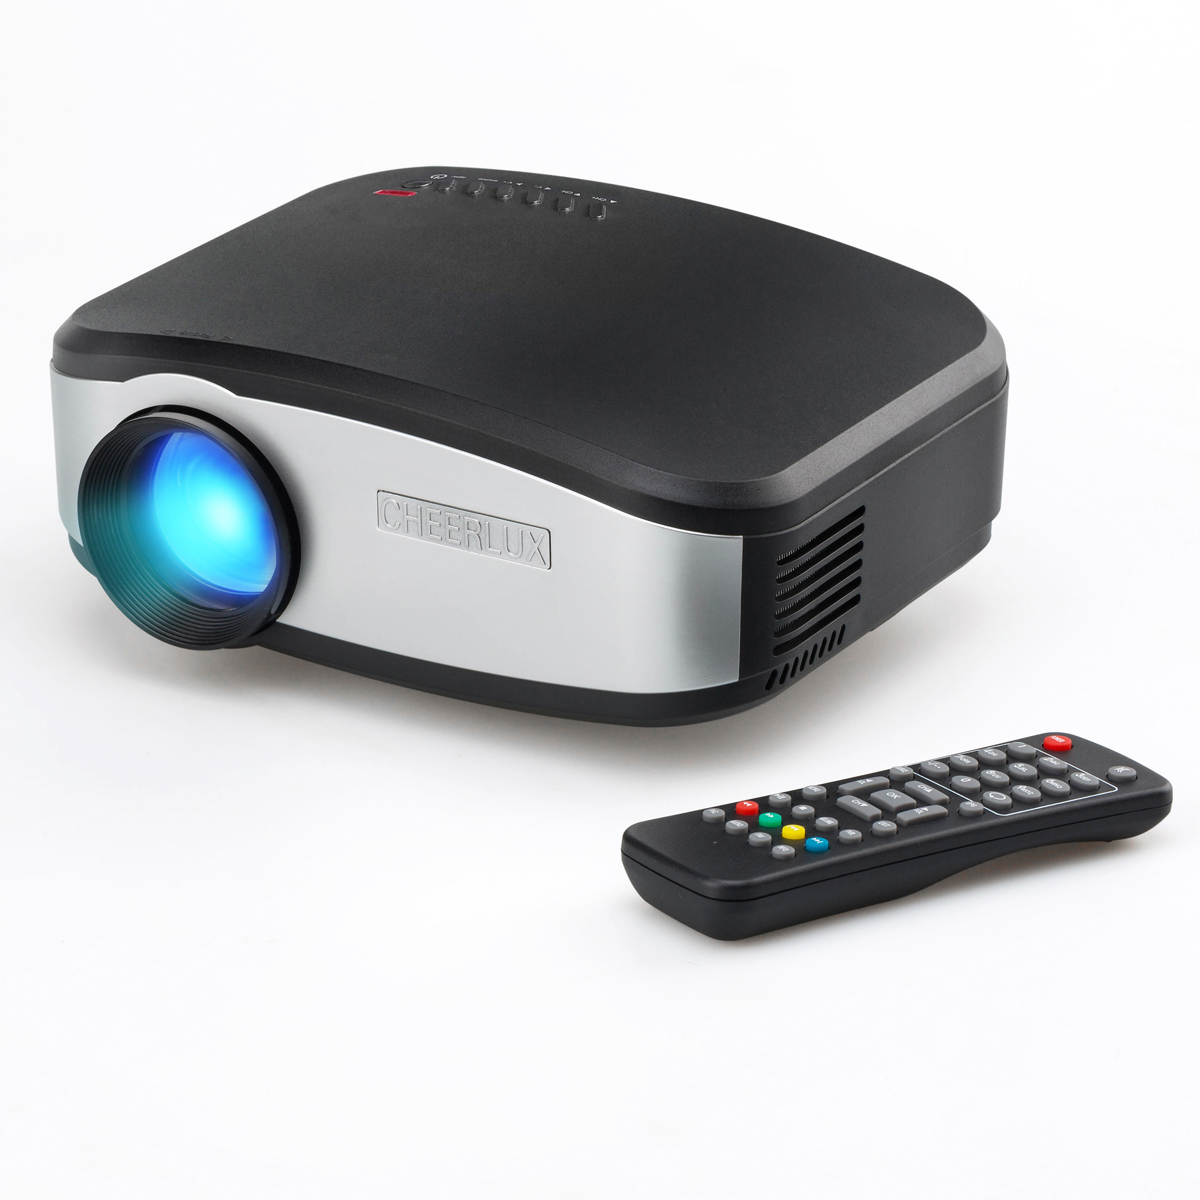 Cheerlux c6 mini lcd portable led projector 1080p hd for Portable projector hdmi 1080p